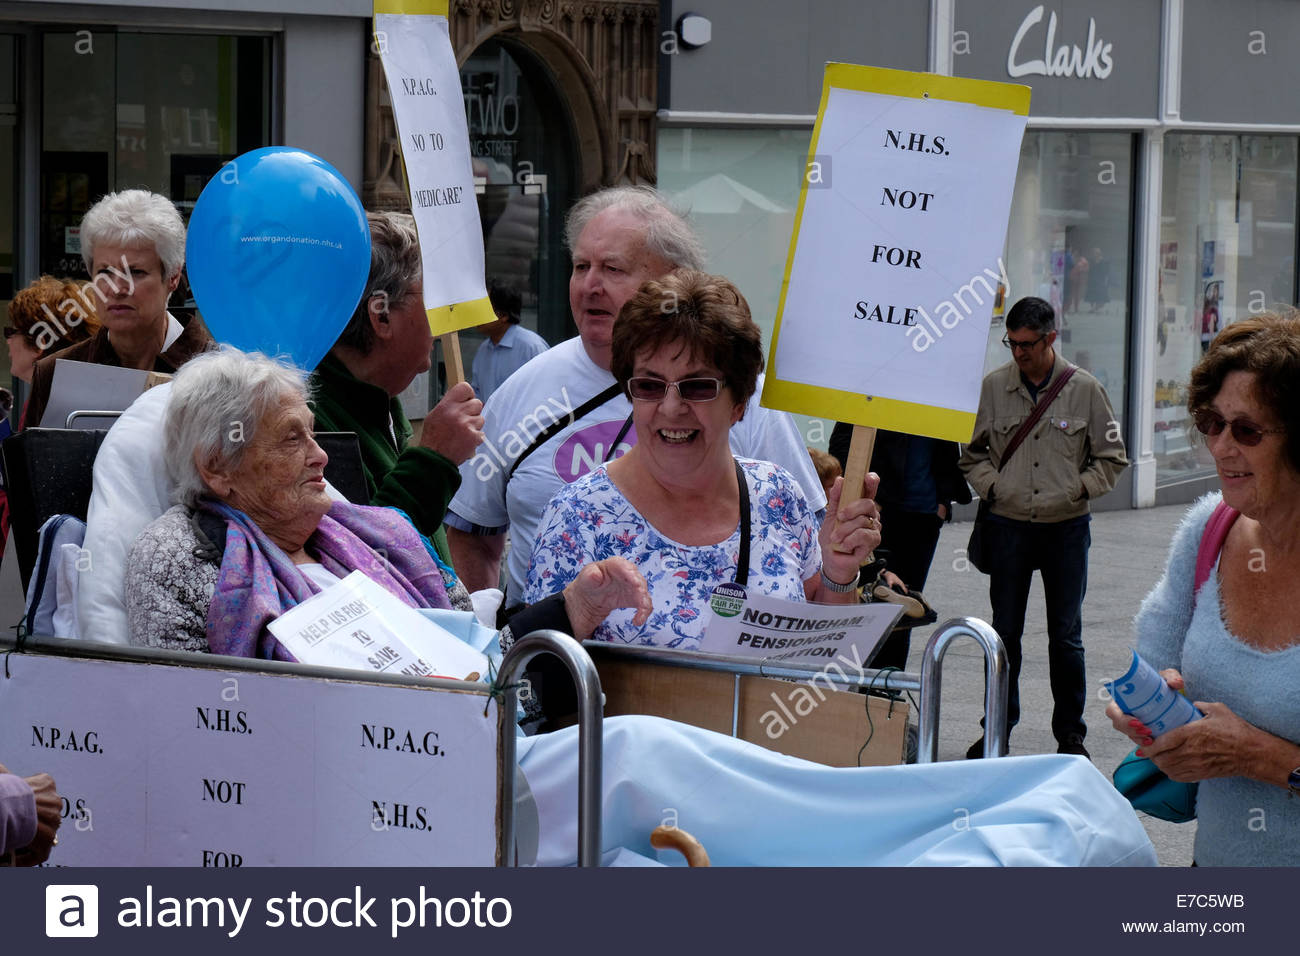 Nottingham, UK. 13th Sep, 2014. Demonstration by Nottingham Pensioners Action Group against cuts and privatisation Stock Photo